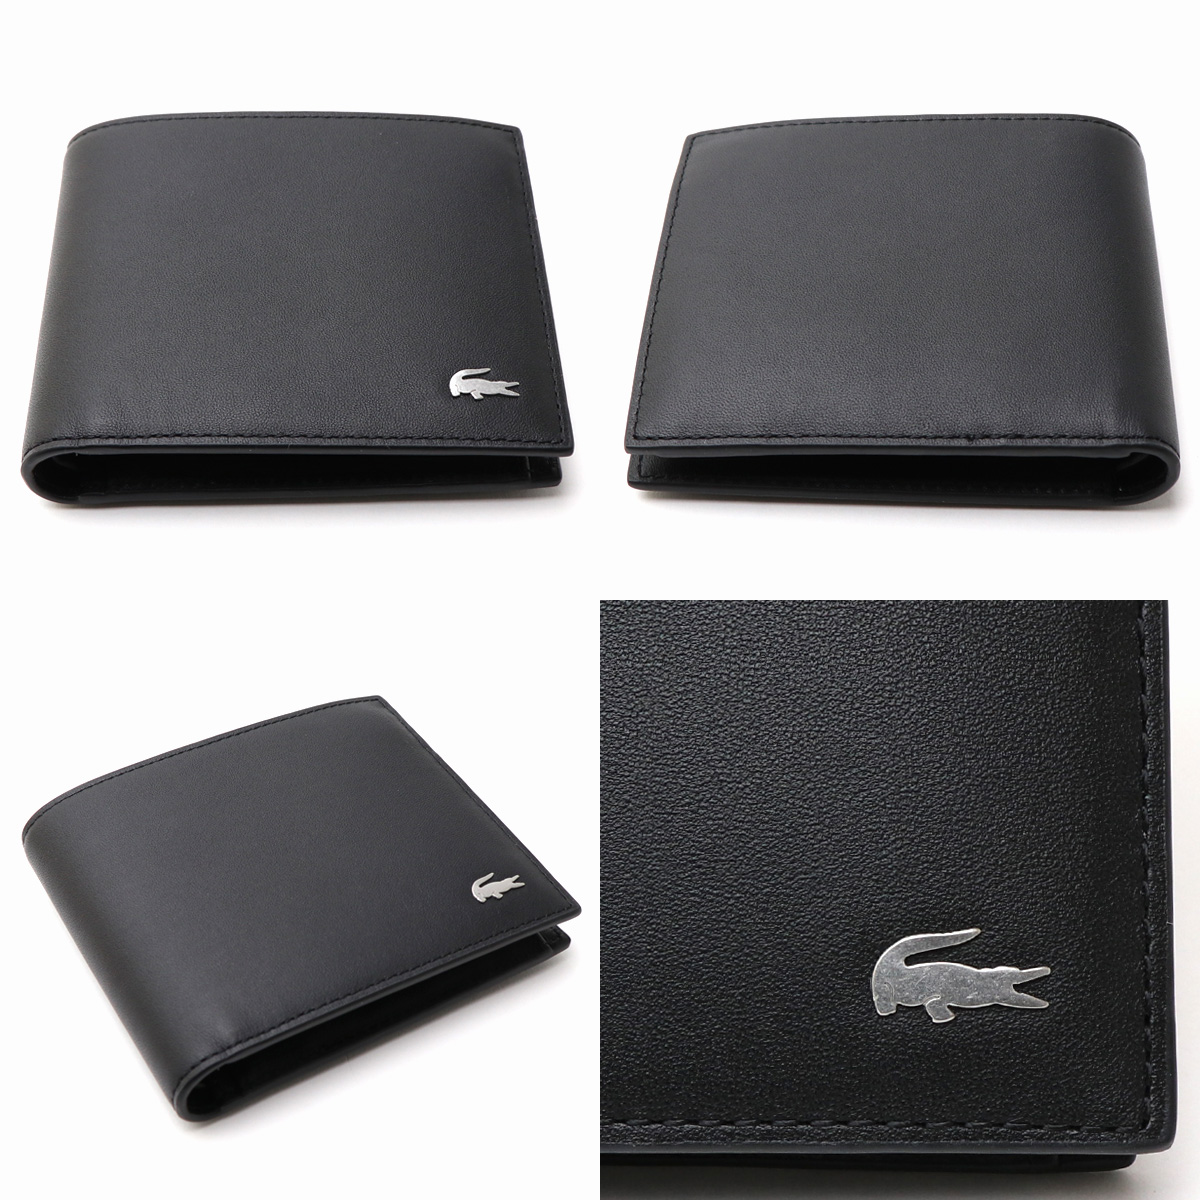 promo code 80f2b 426f4 Gift set present for the folio wallet cardholder pass holder card case  ワニクロコワンポイント genuine leather calf-leather man with the LACOSTE men wallet  card ...